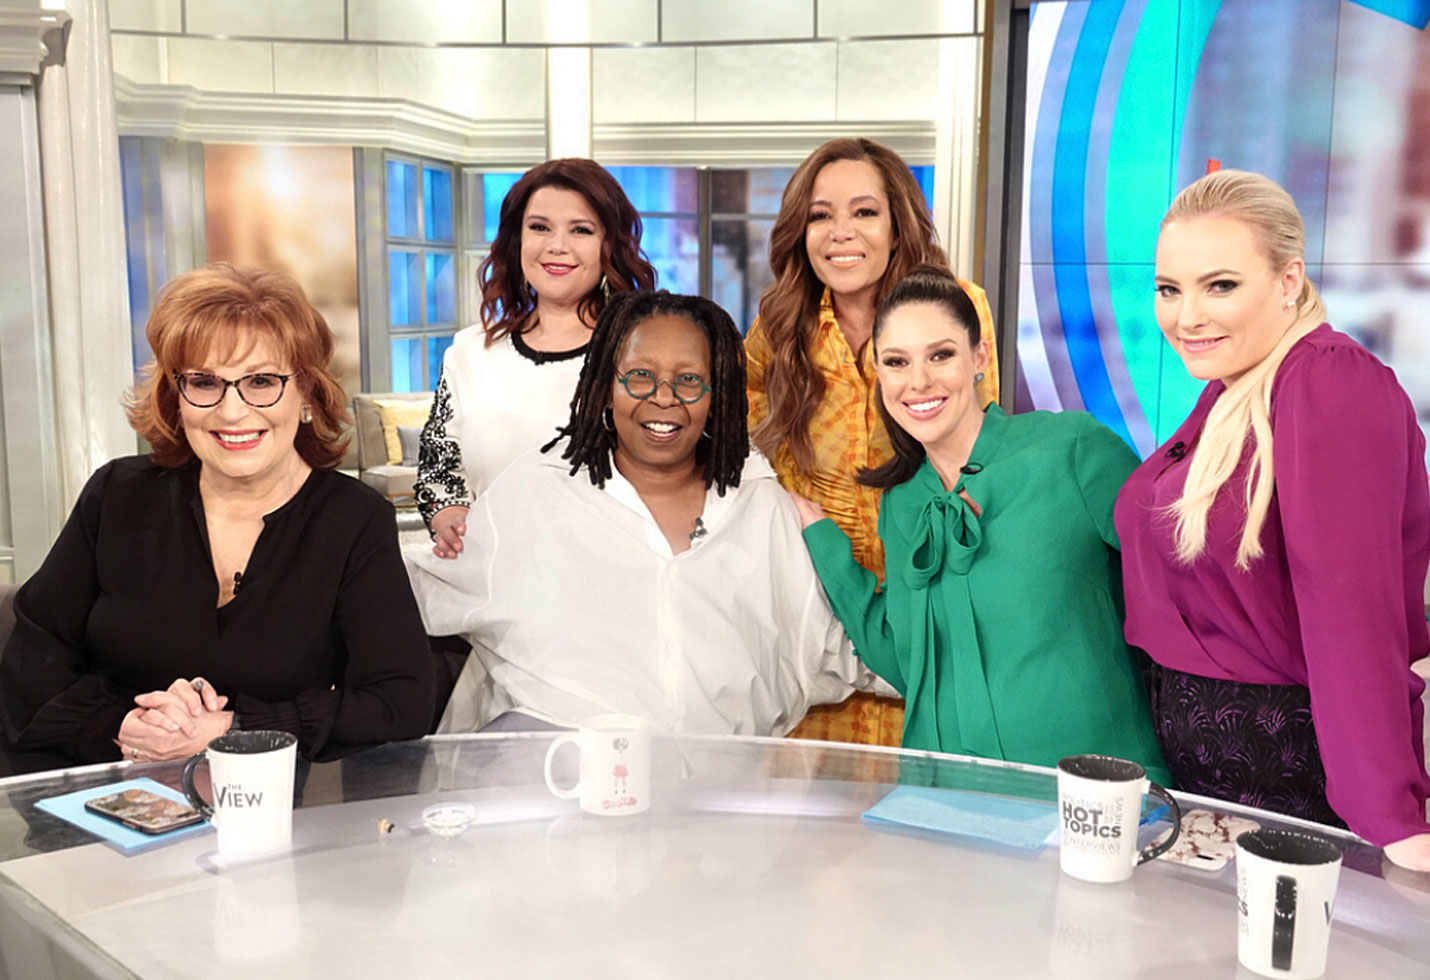 Whoopi goldberg returns the view pneumonia video